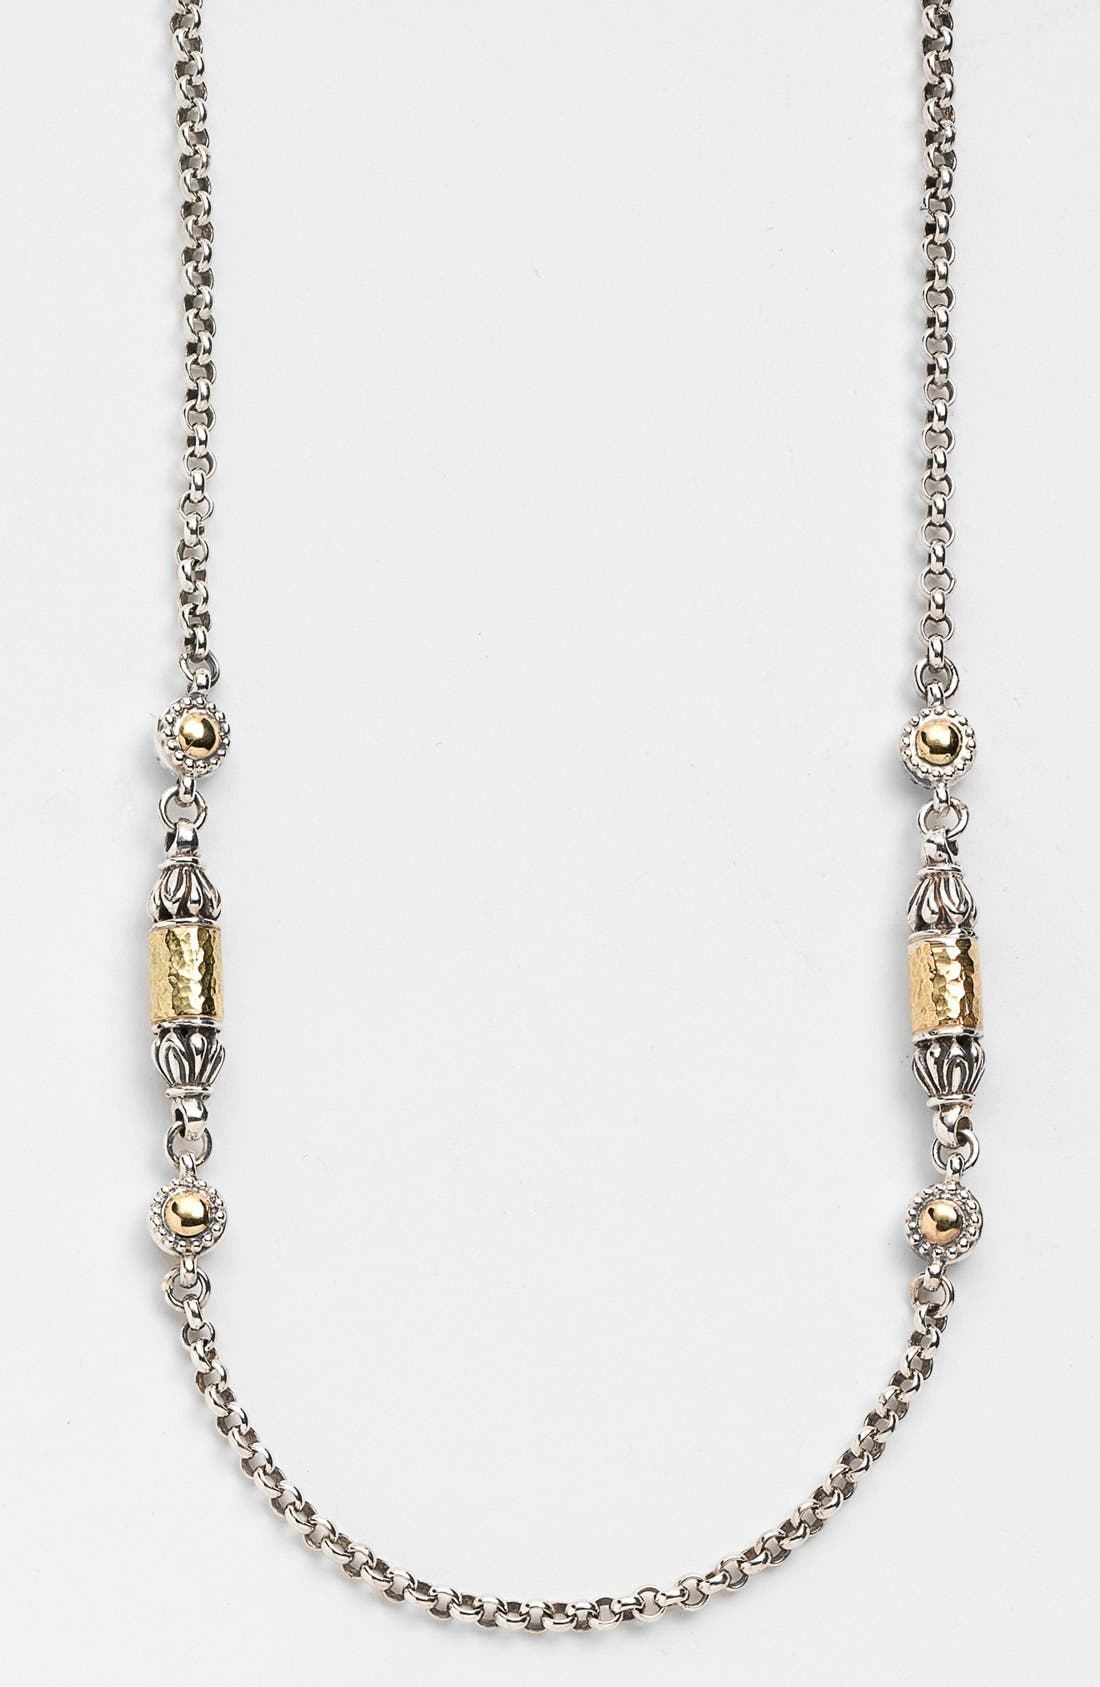 Main Image - Konstantino 'Classics' Two-Tone Hammered Station Necklace